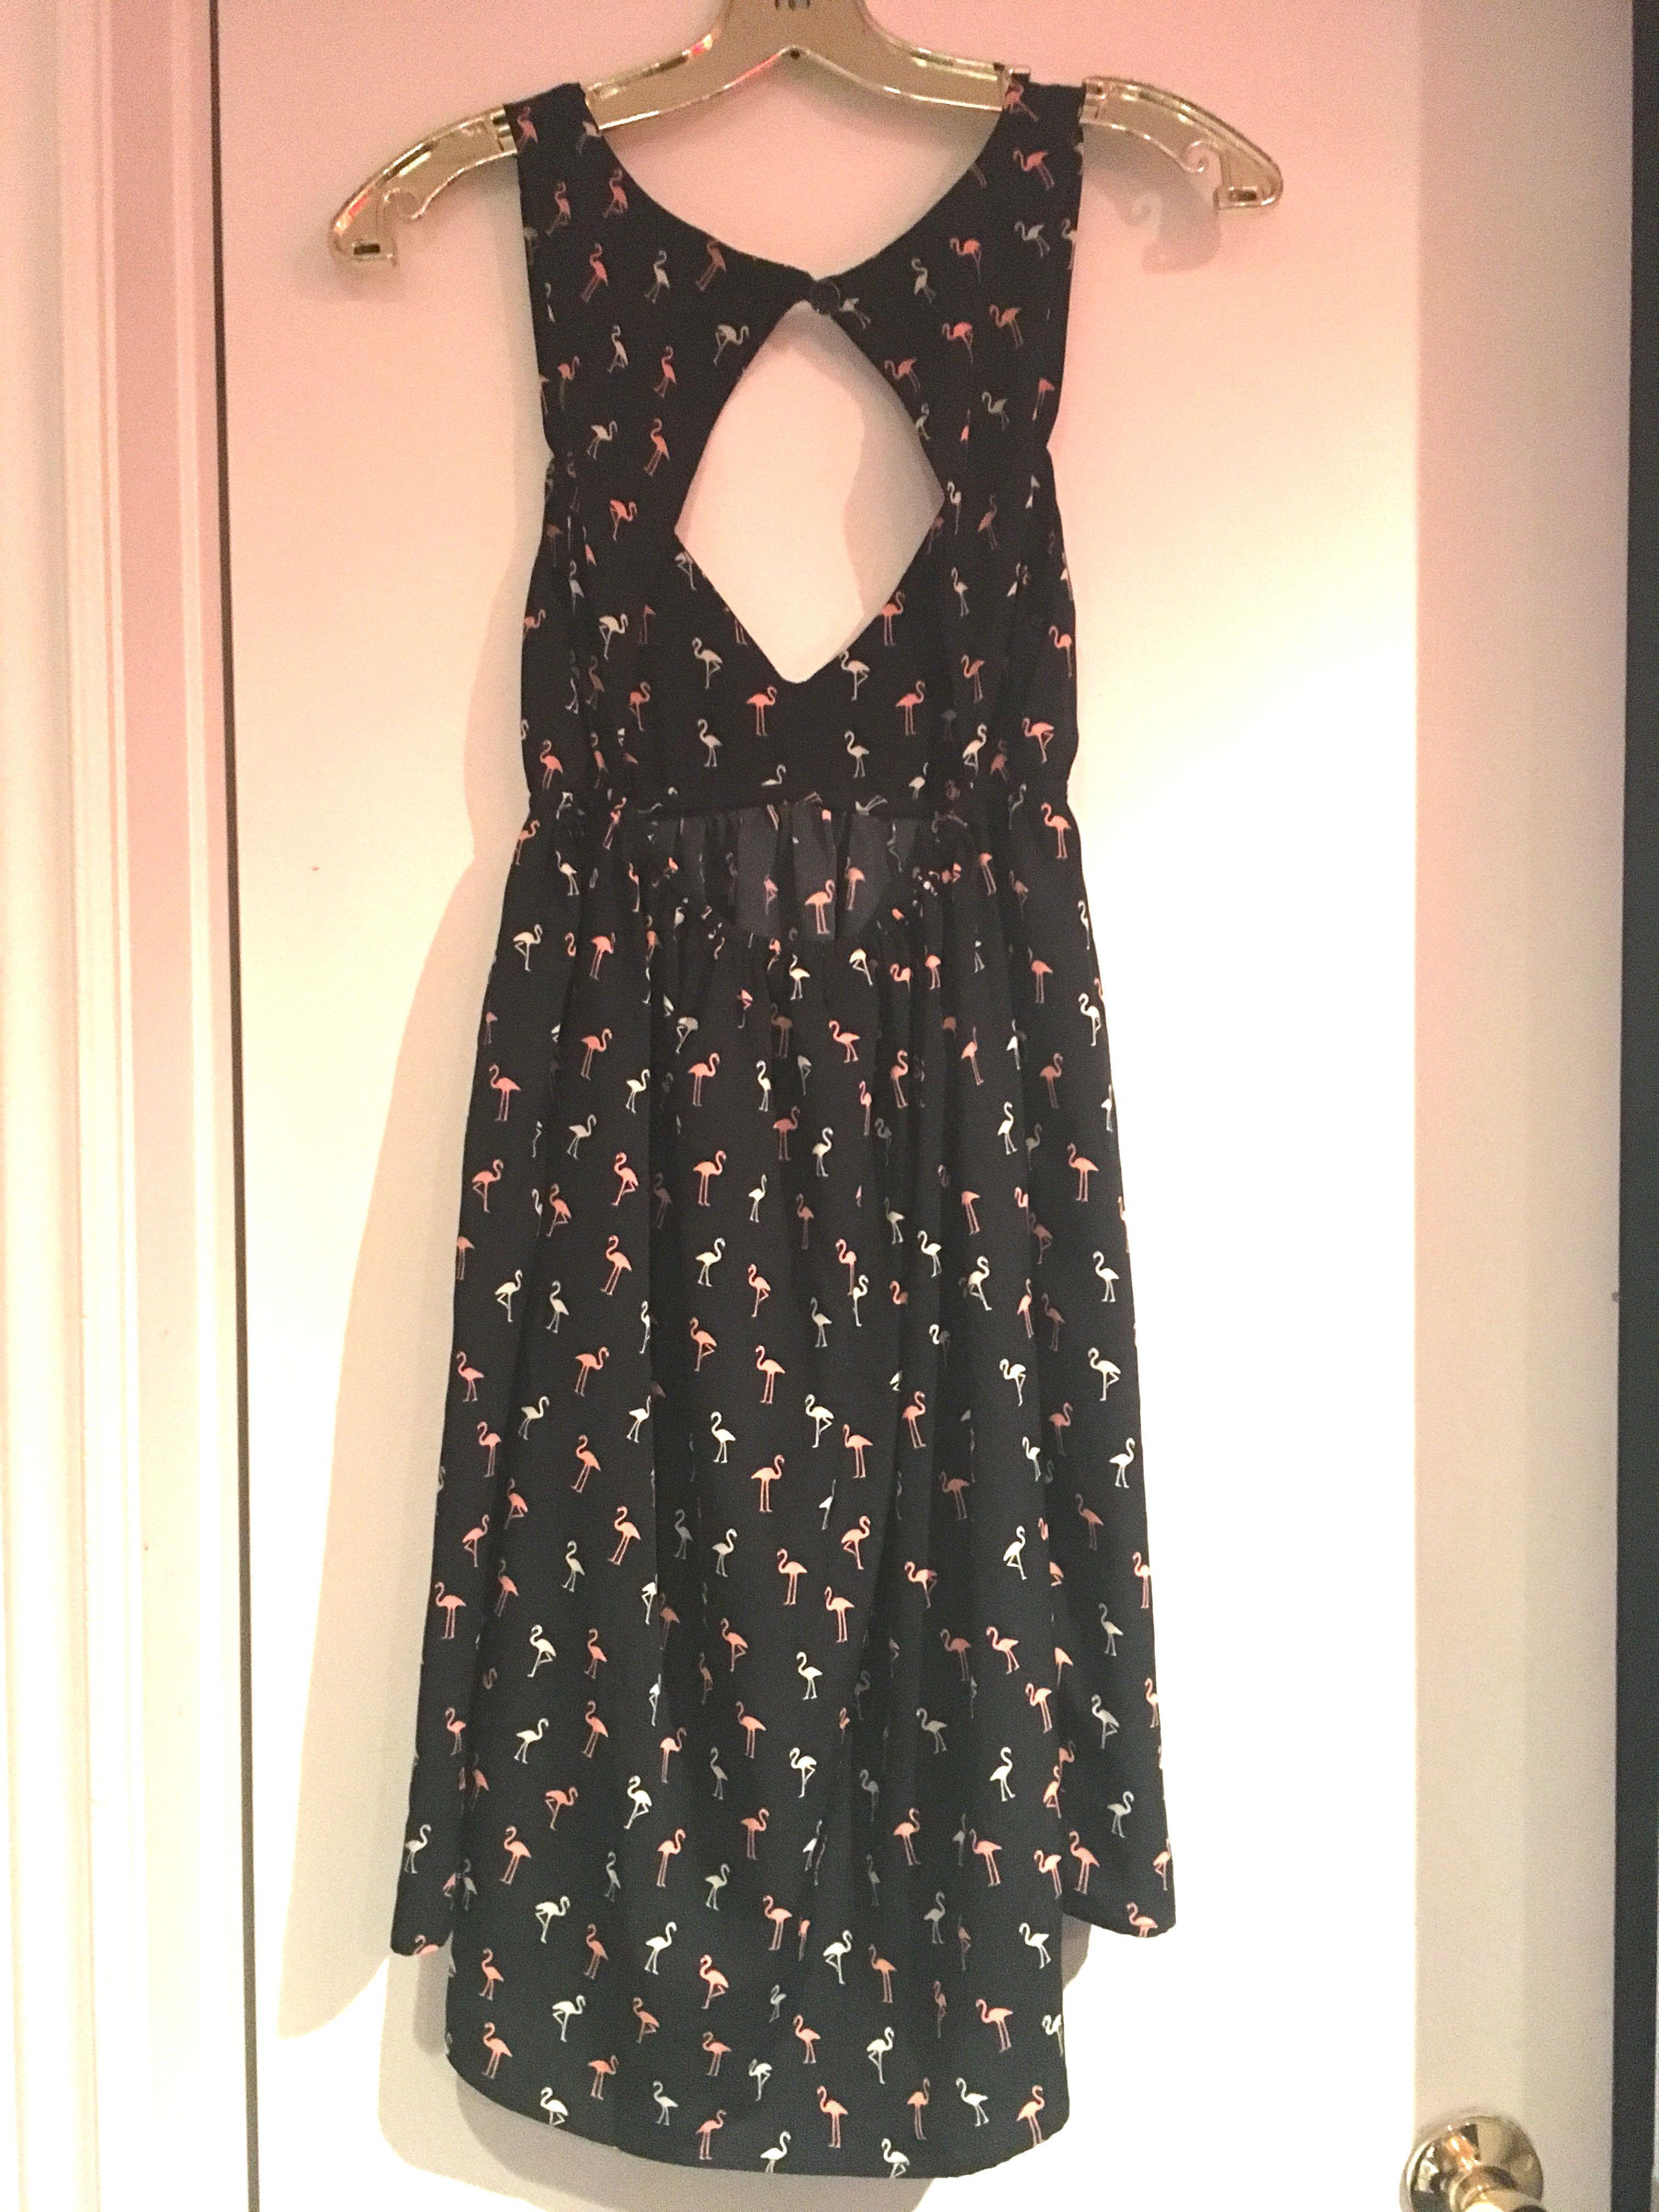 ROXY Women's Black Pink Flamingo Print Sundress Dress Cut out Back and Hi Low Hem Size - Never Been Worn